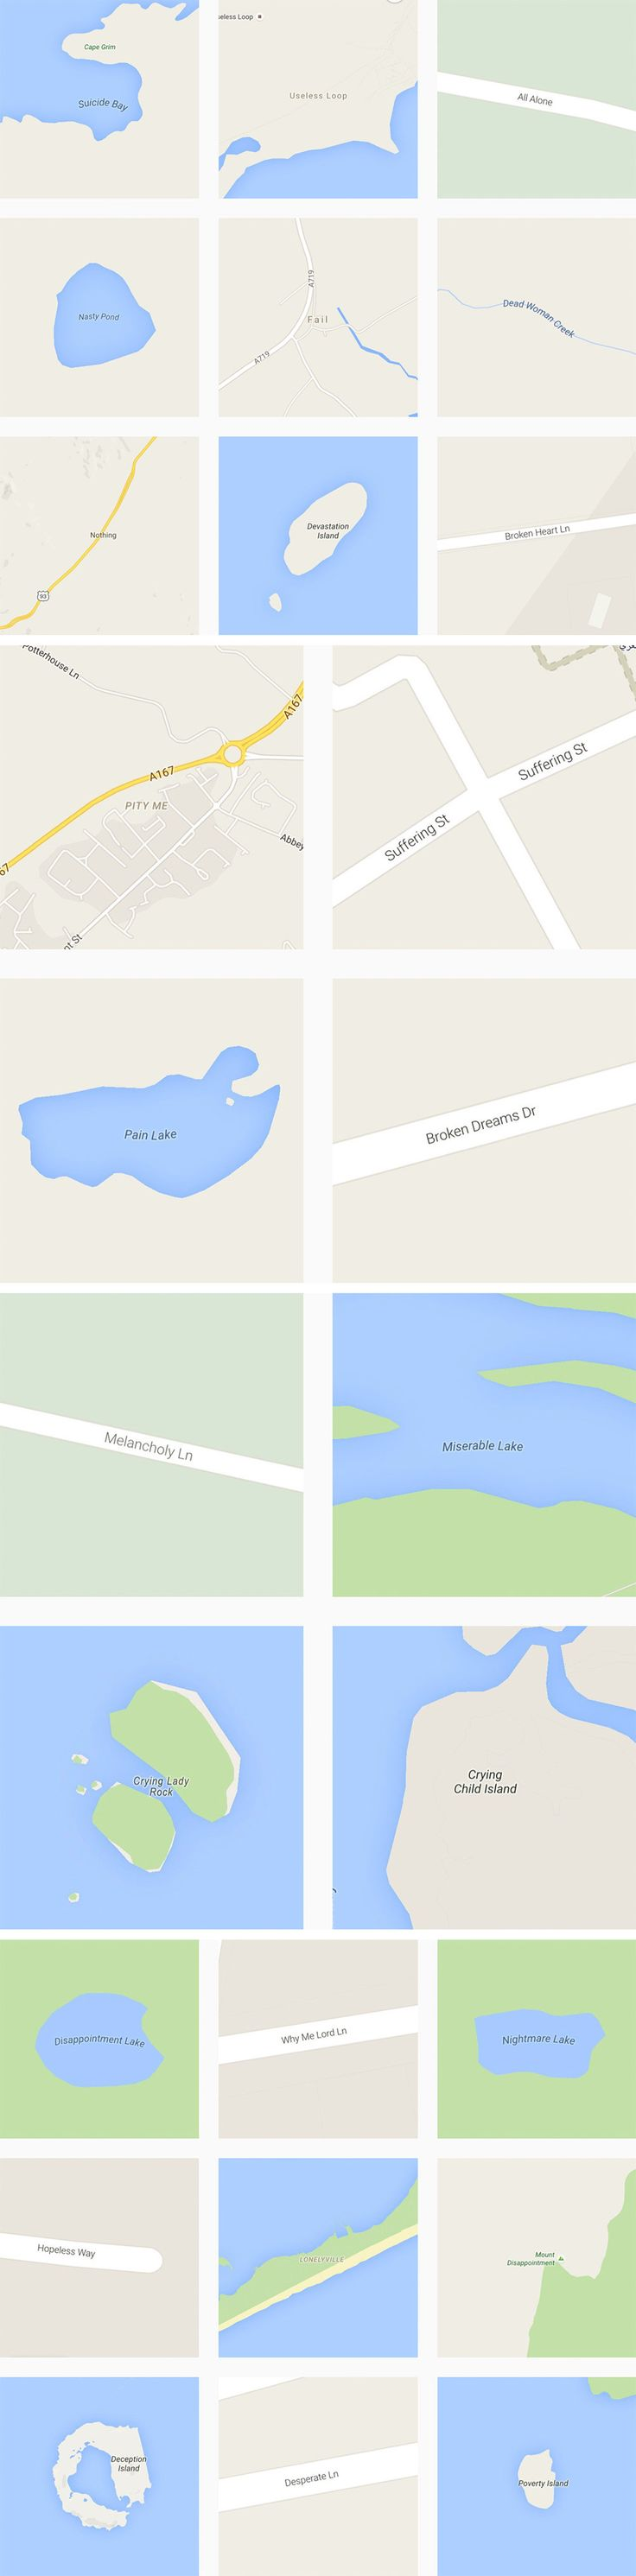 Archiving the World's Saddest Destinations Via Google Maps